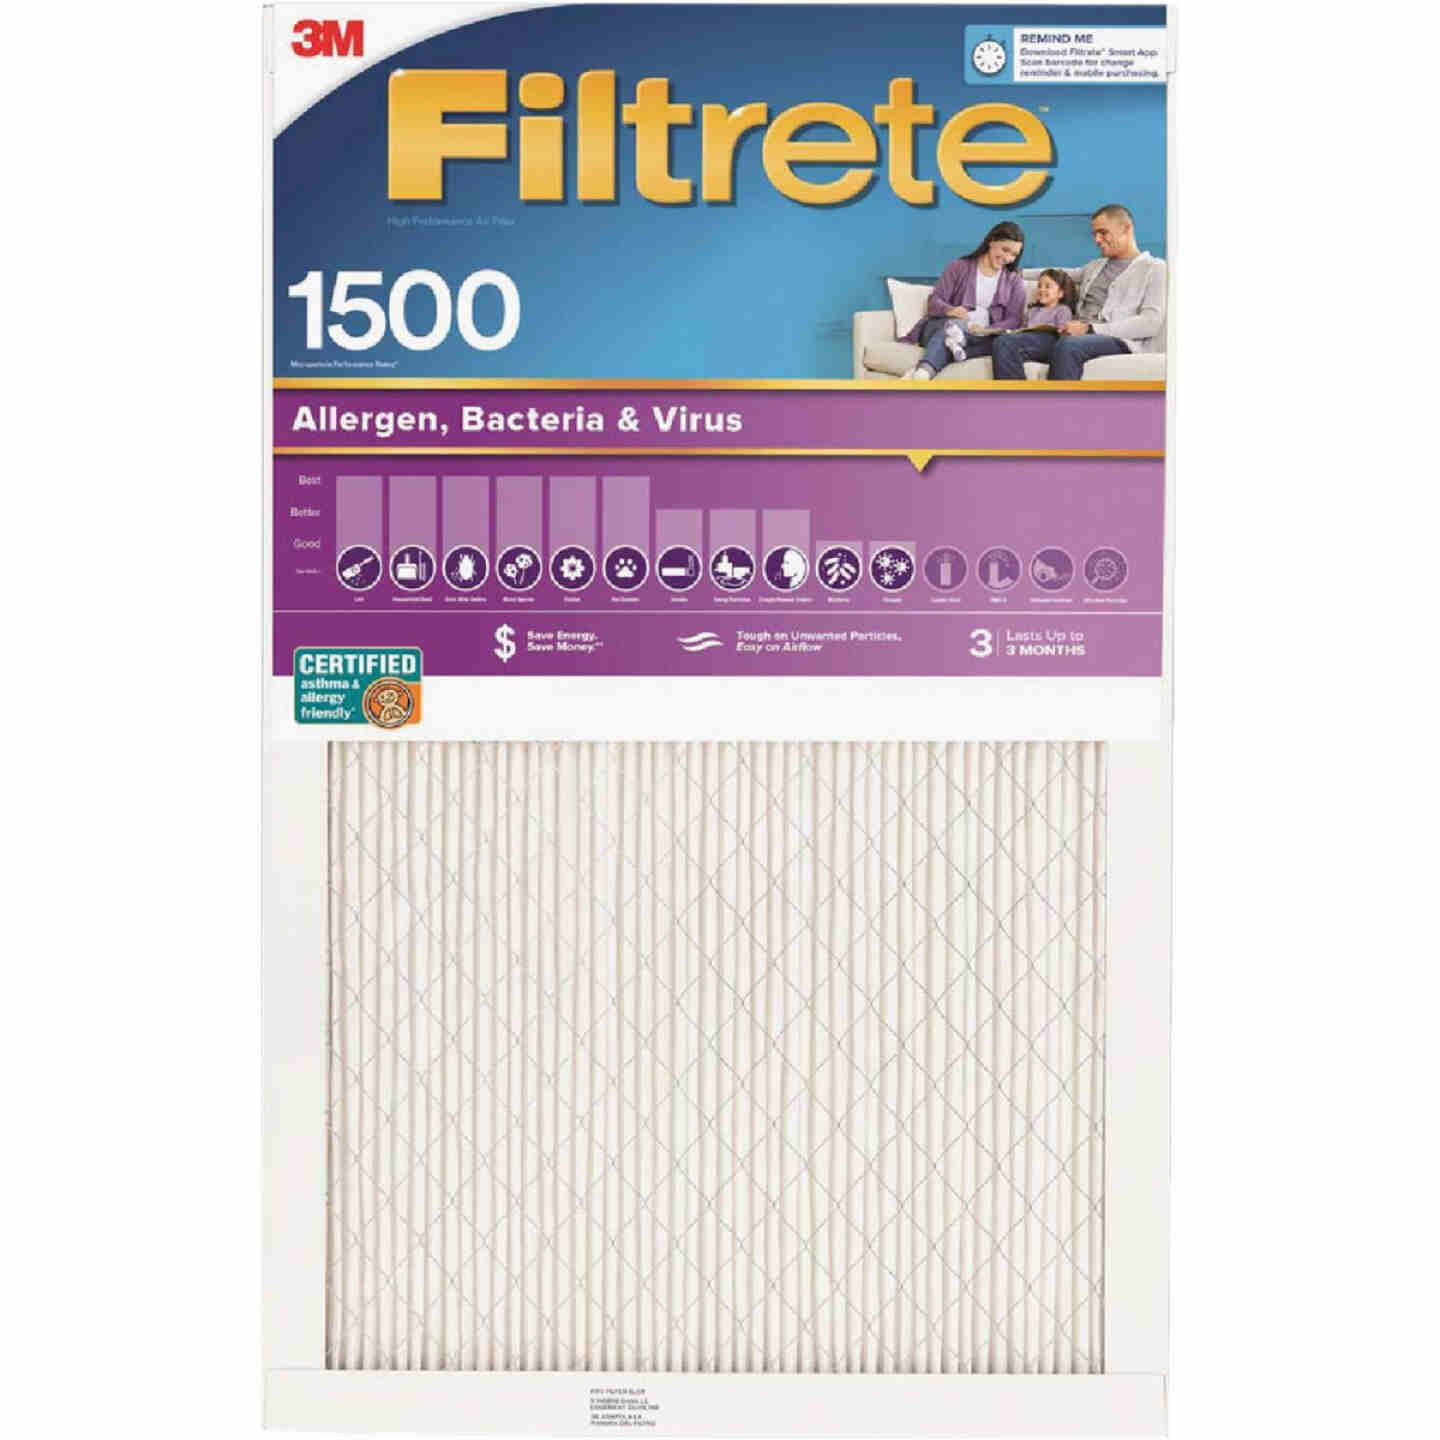 3M Filtrete 14 In. x 25 In. x 1 In. Ultra Allergen Healthy Living 1550 MPR Furnace Filter Image 1